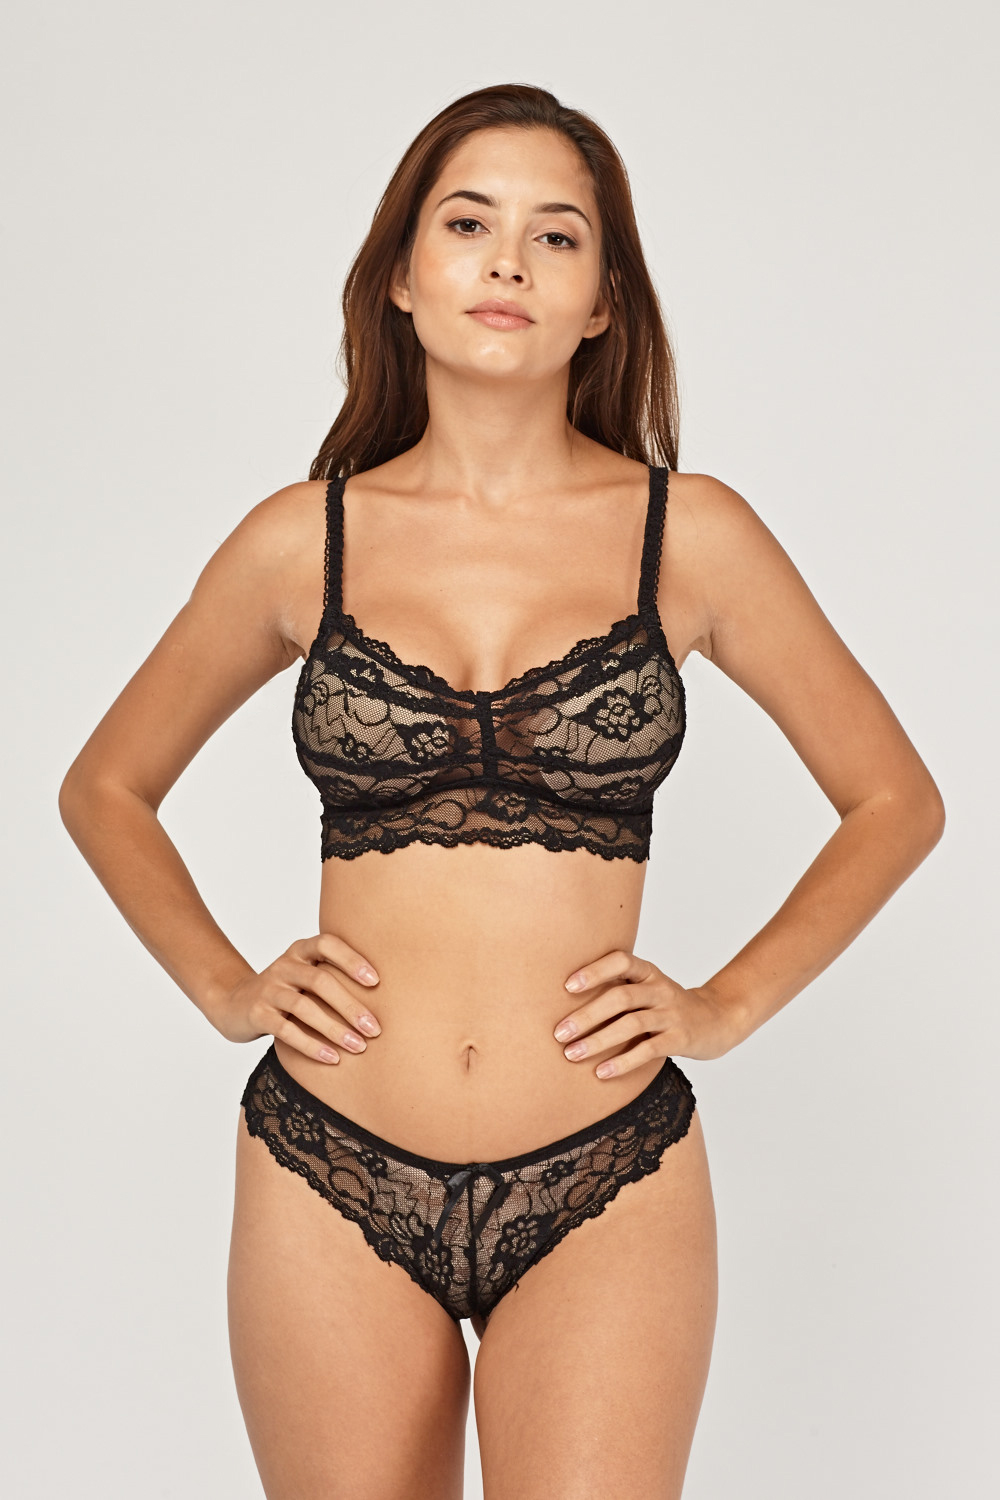 f4fbf02451 Laced Bralette And Brief Set - Just £5